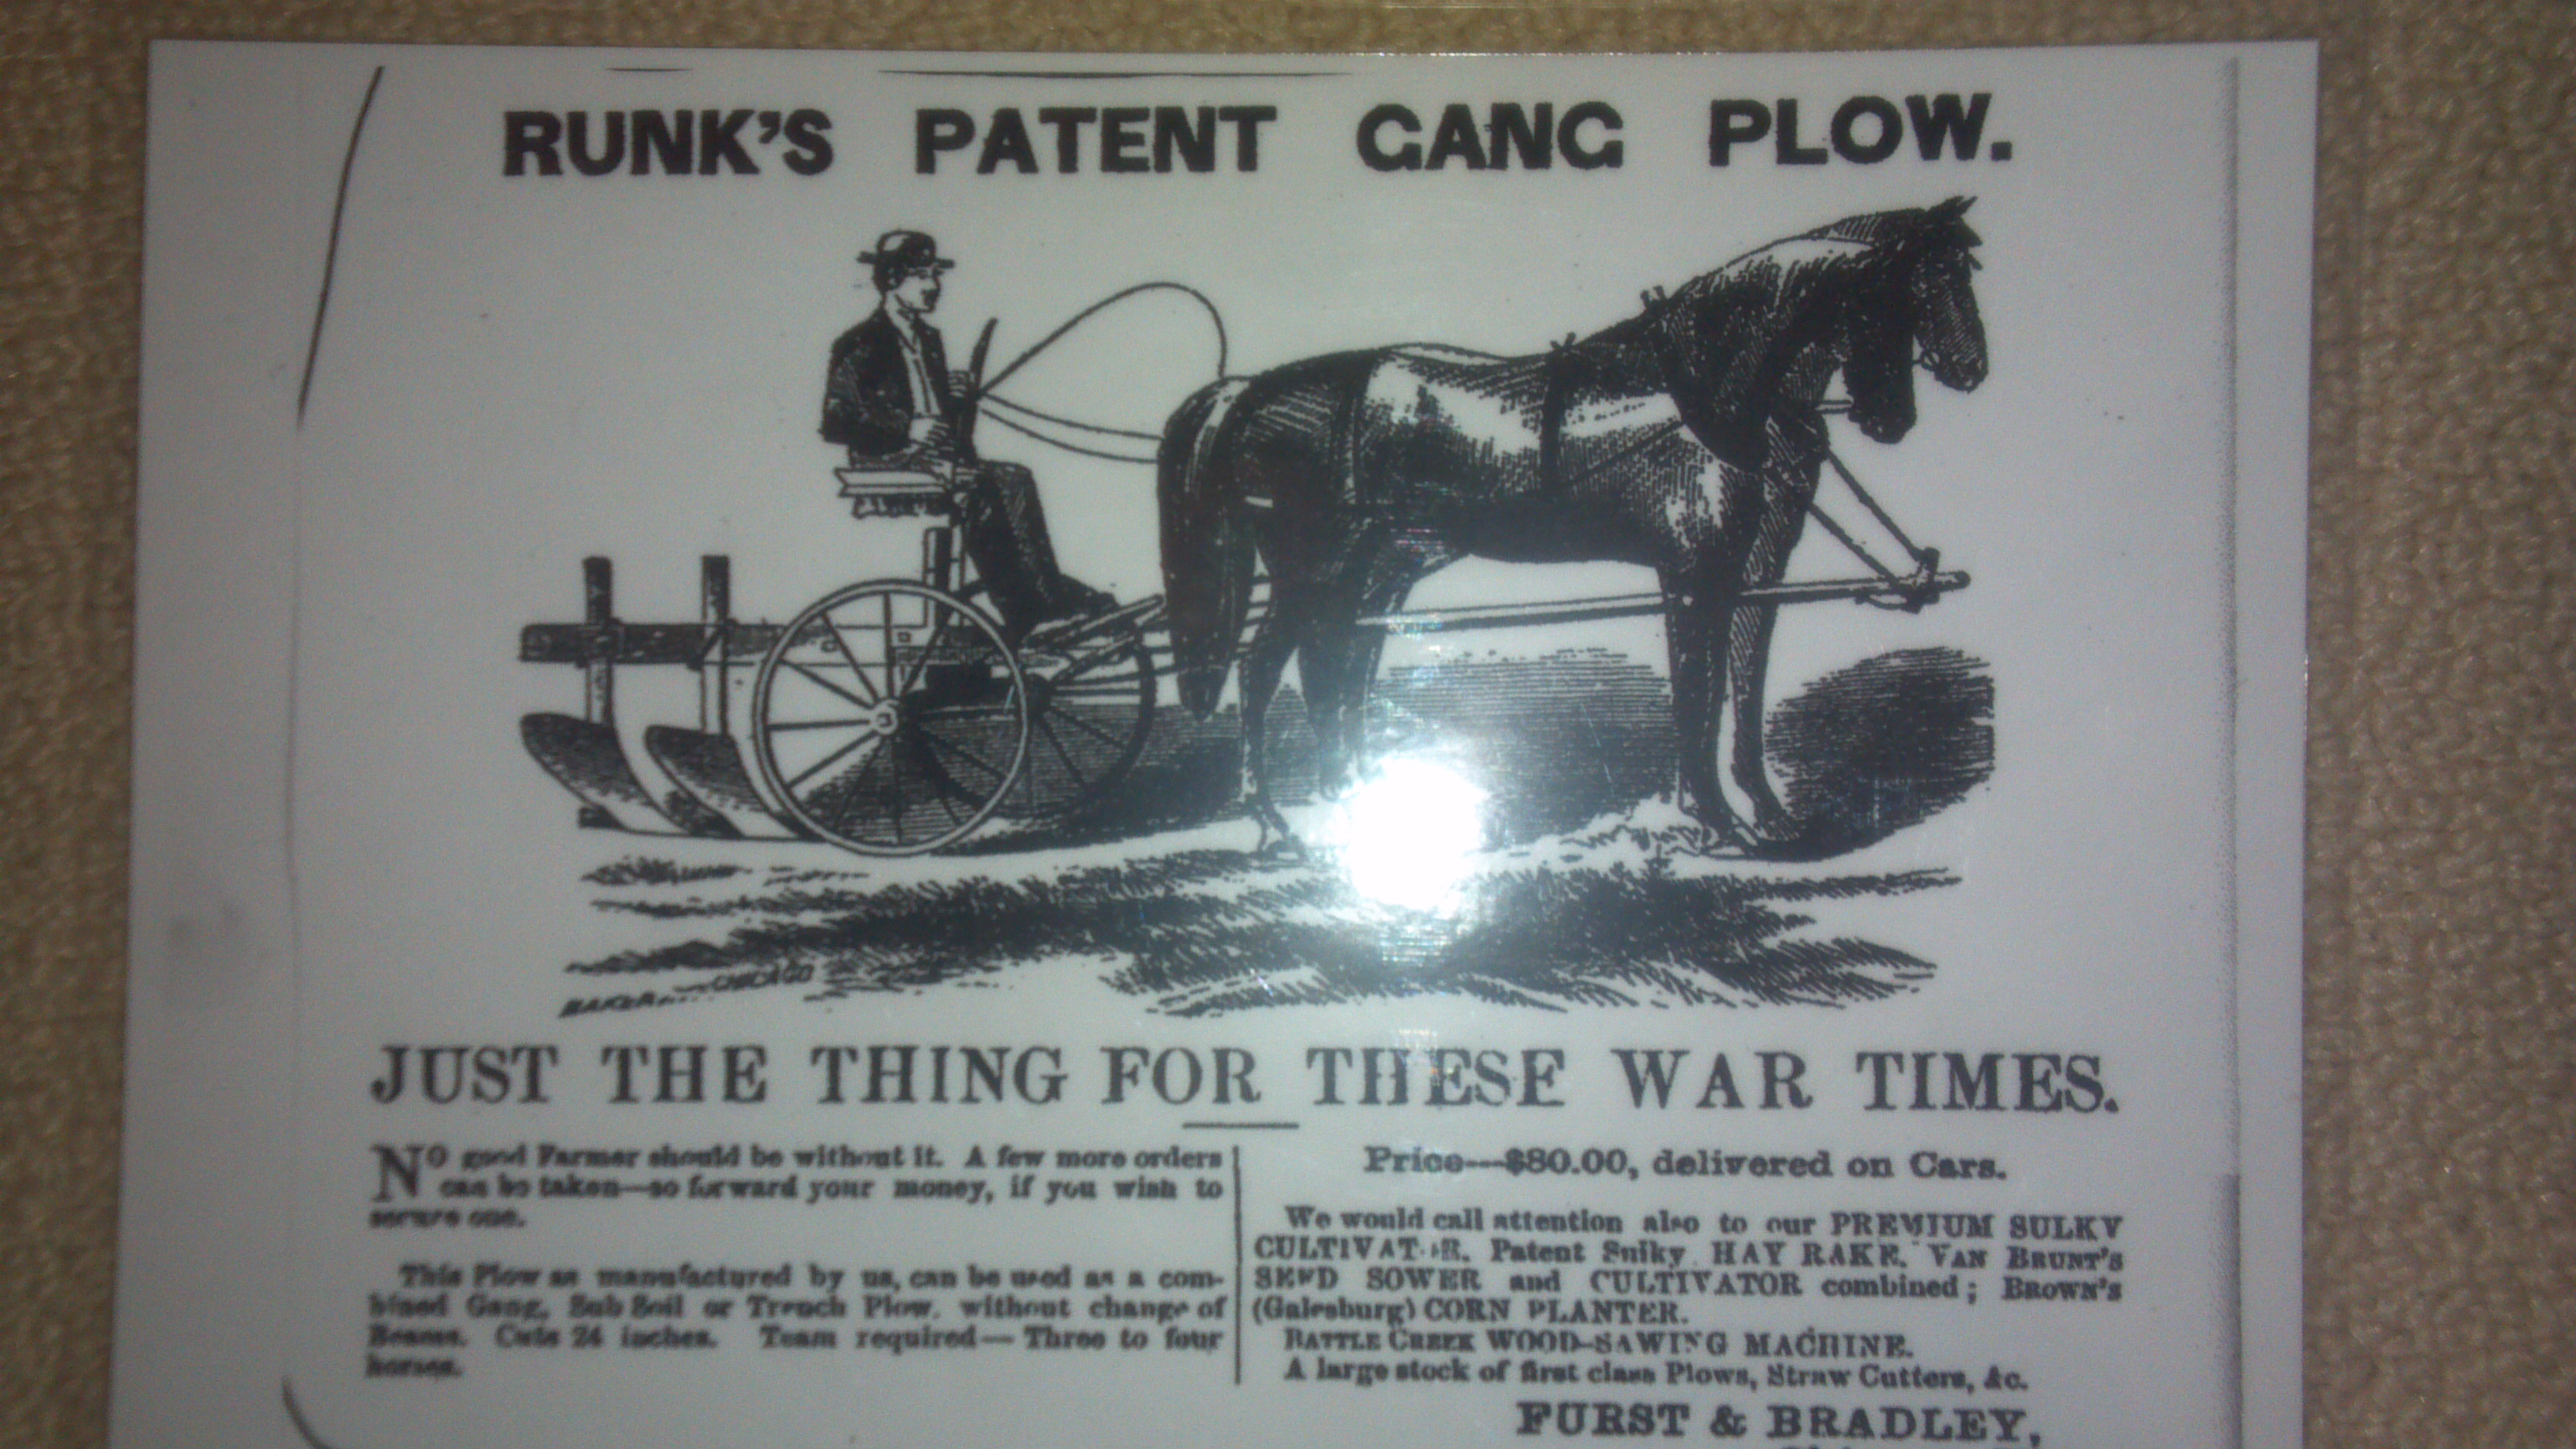 Runk's Patent Gang Plow Advertisement